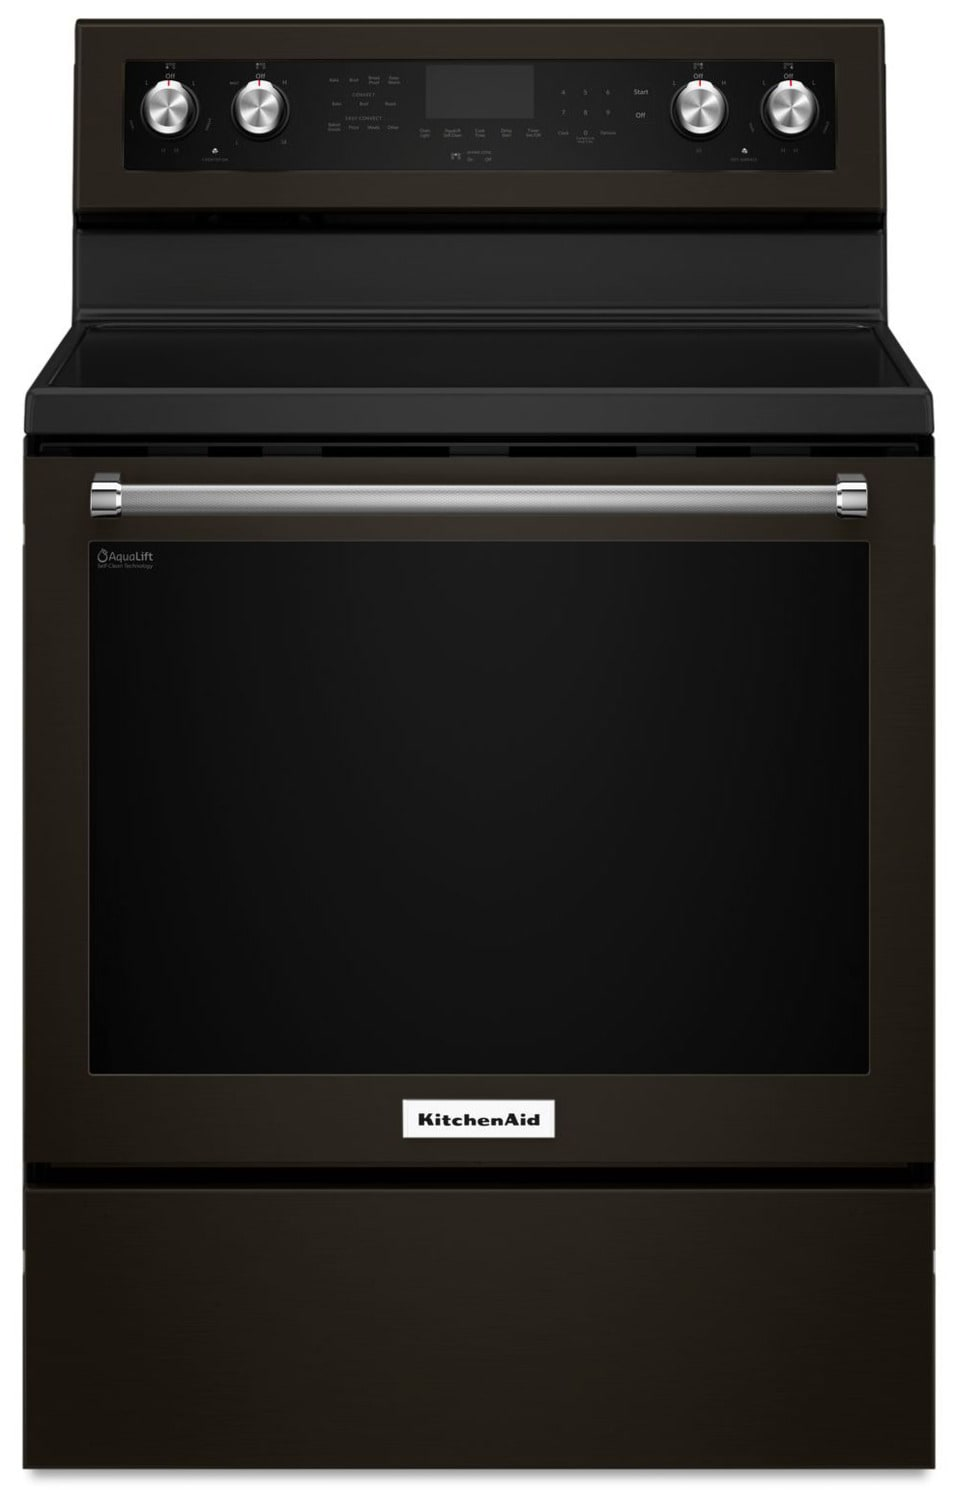 KitchenAid Black Stainless Steel Freestanding Electric Convection Range (6.4 Cu. Ft.) - YKFEG500EBS